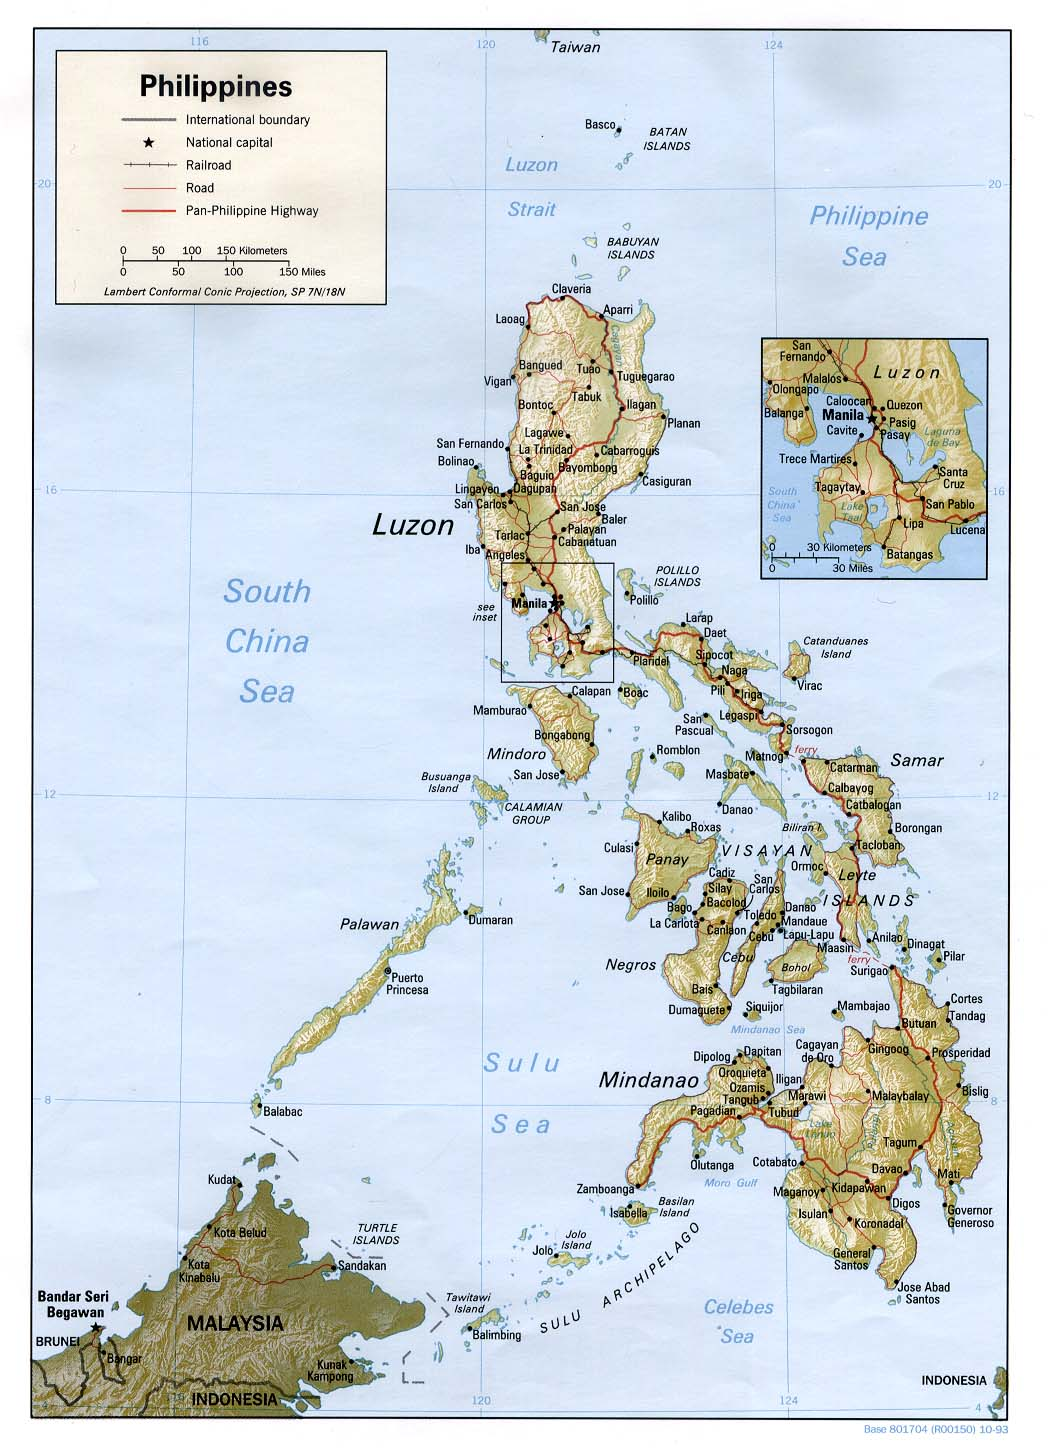 geography and culture of the philippines Geography the philippines is an archipelago, or string of over 7,100 islands, in southeastern asia between the south china sea and the pacific ocean the two largest islands, luzon and mindanao, make up for two-thirds of the total land area.